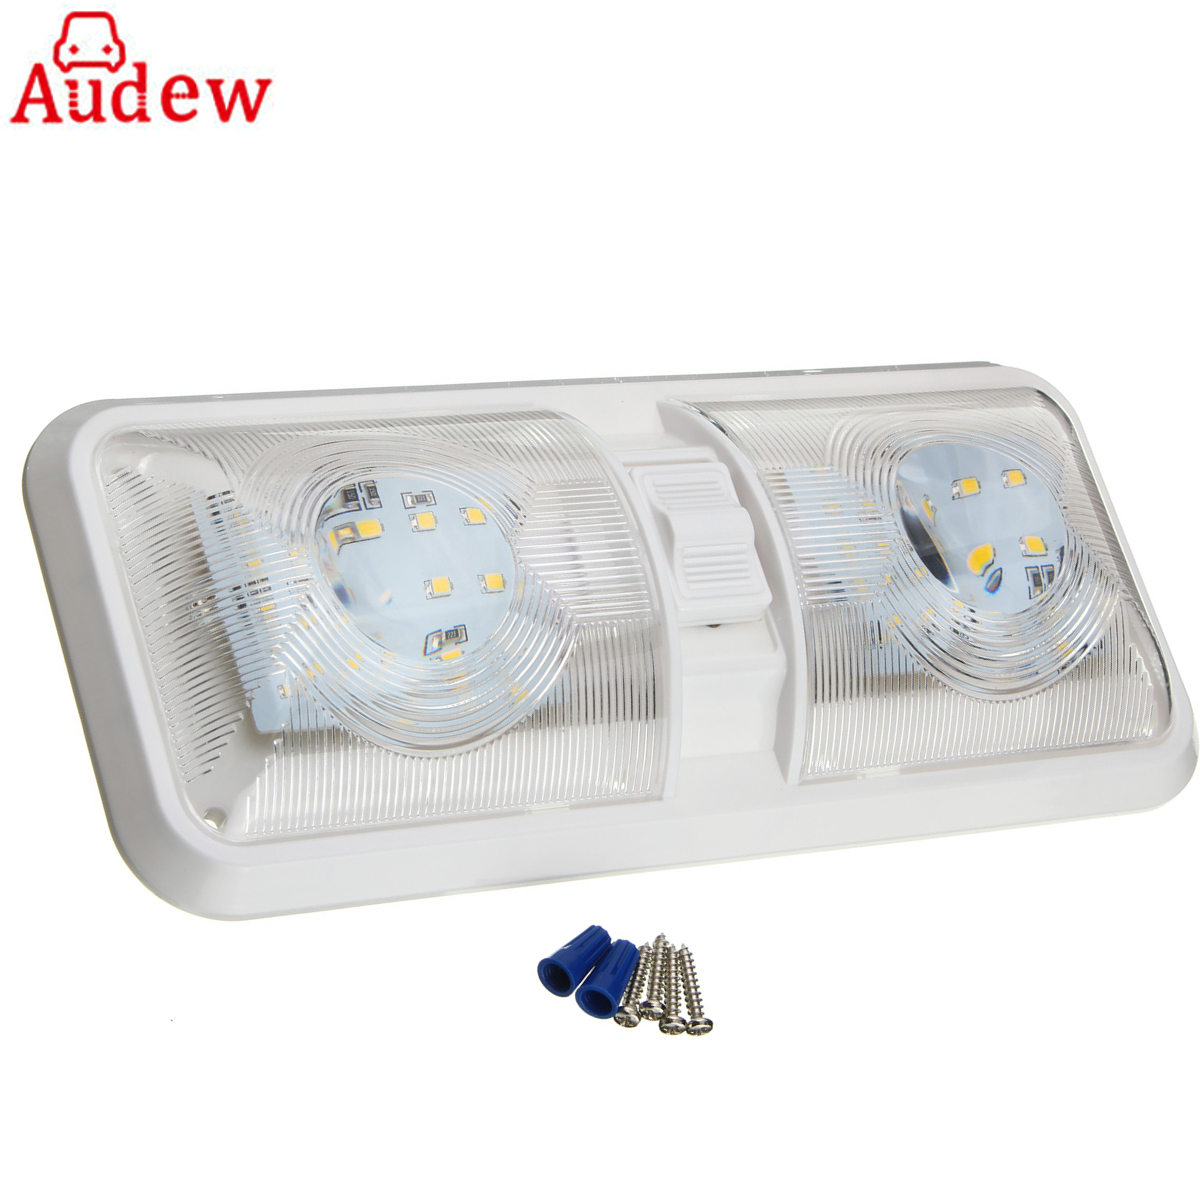 1Pcs Car Dome Light 12V 48 LED Interior Roof Ceiling Reading Lamp For RV Boat For Camper Trailer Plastic White бра mantra bali 1225m